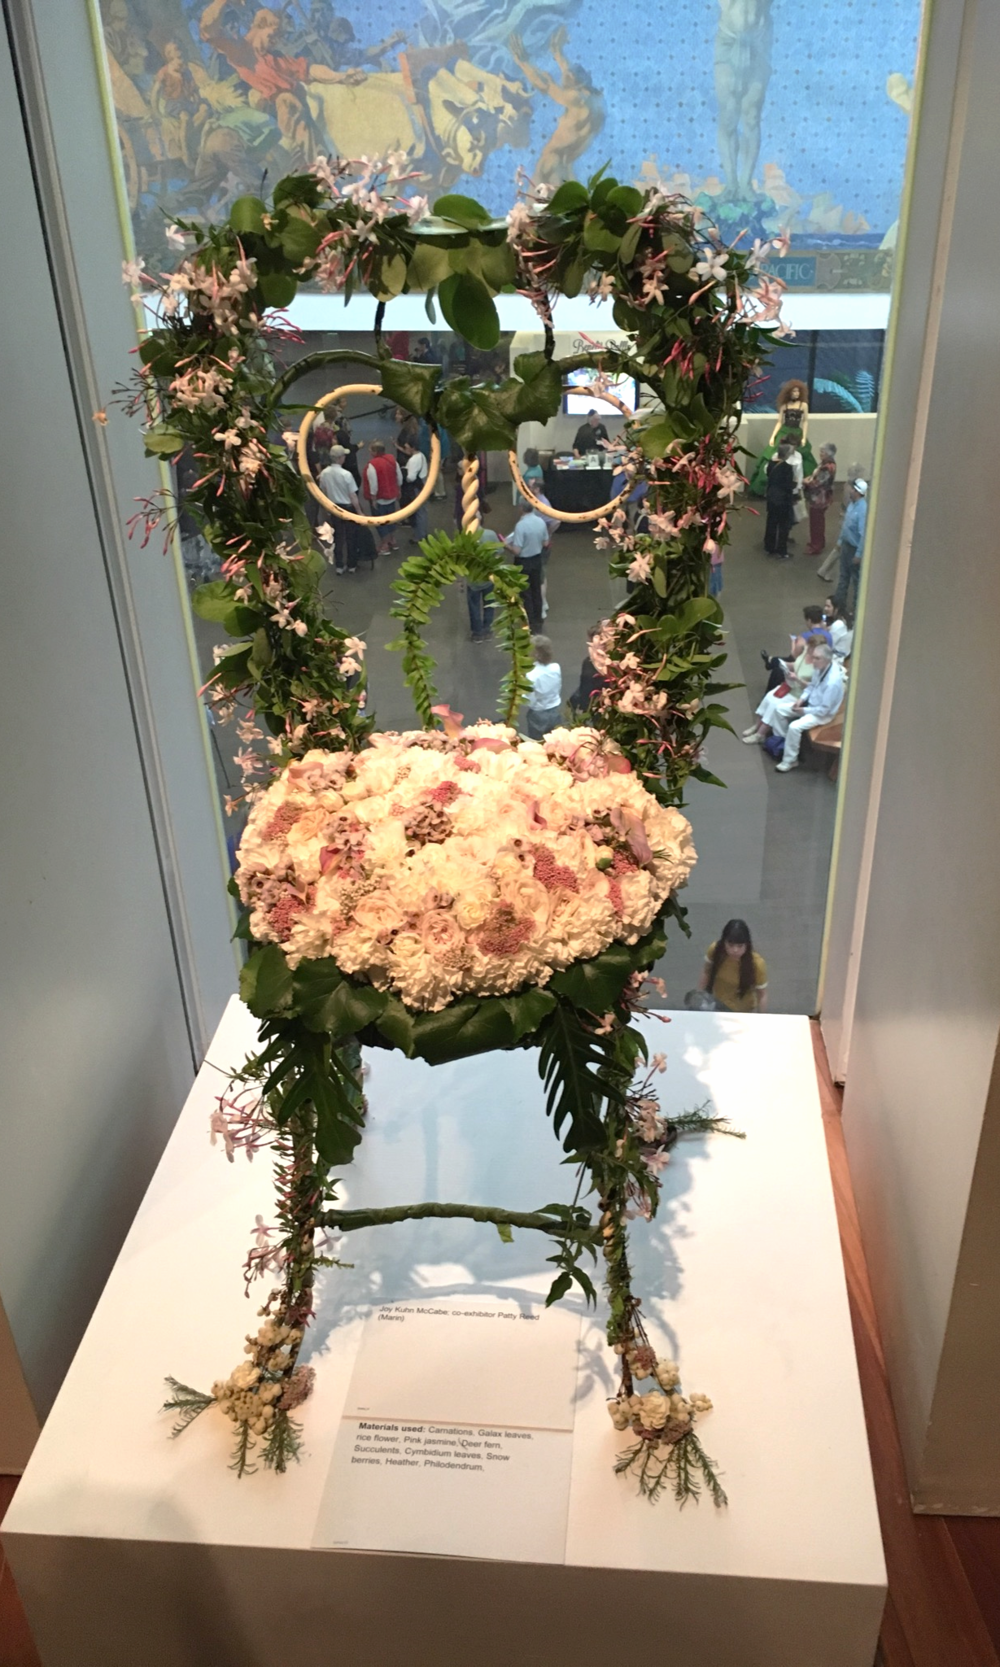 Not the best picture, but this chair featured some of my favorite flowers: jasmine and succulents.